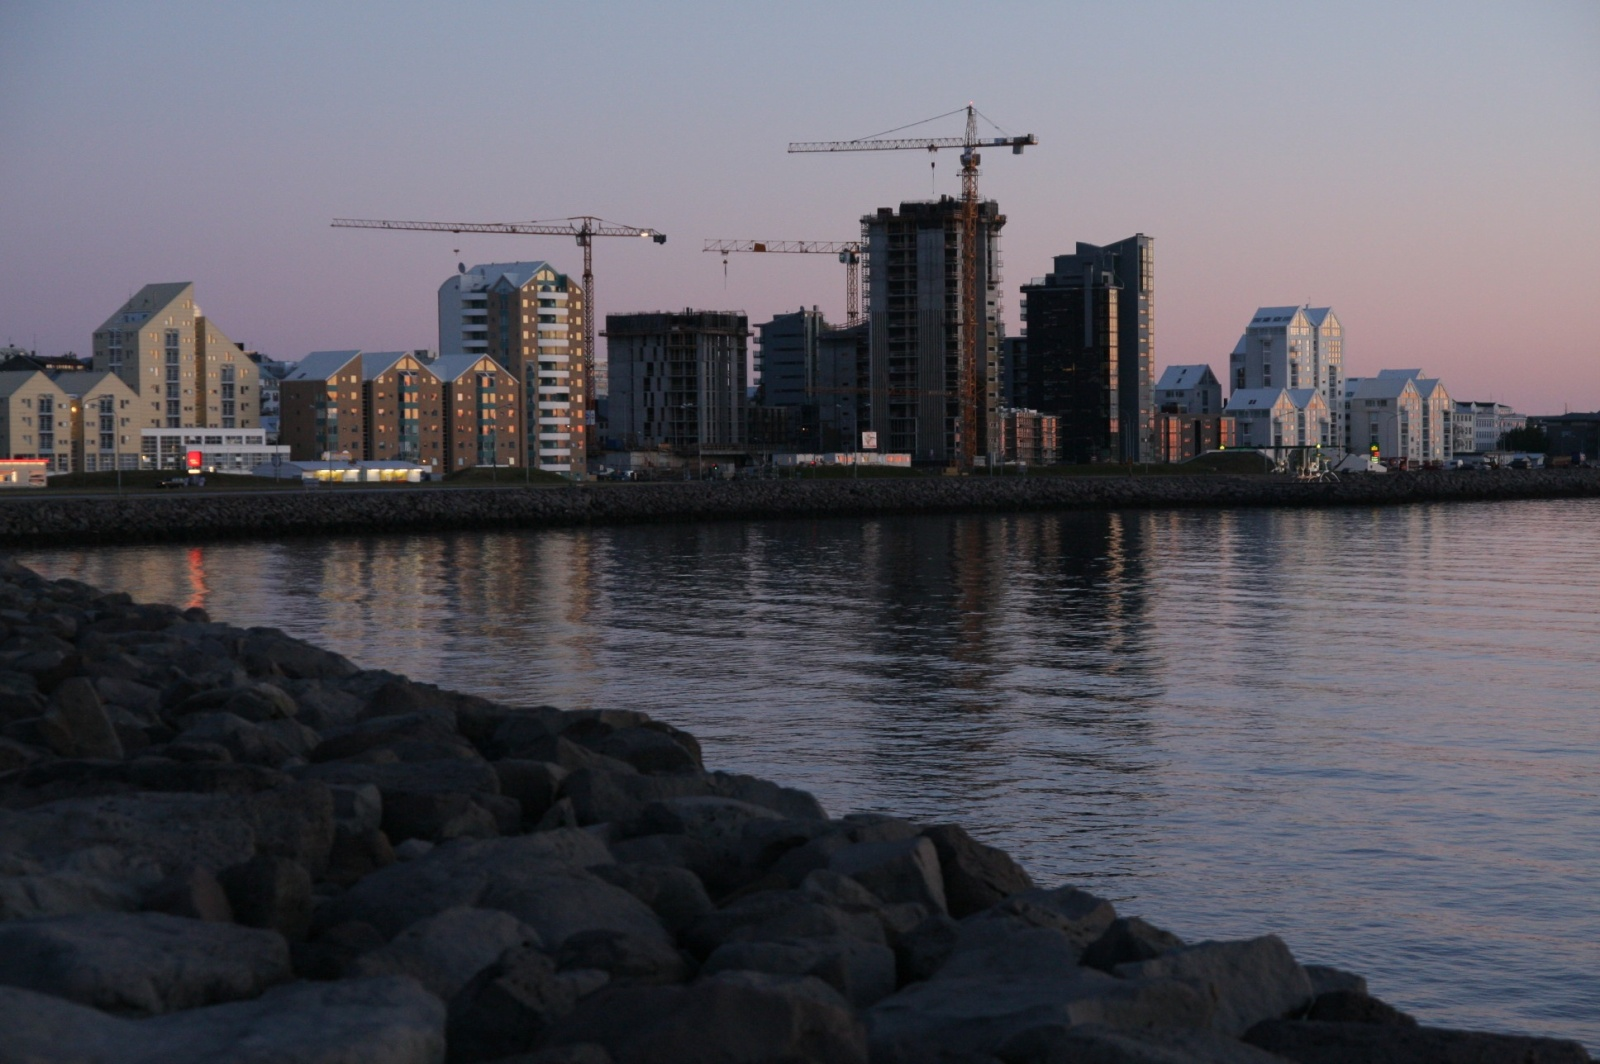 New construction in Reykjavik during the night